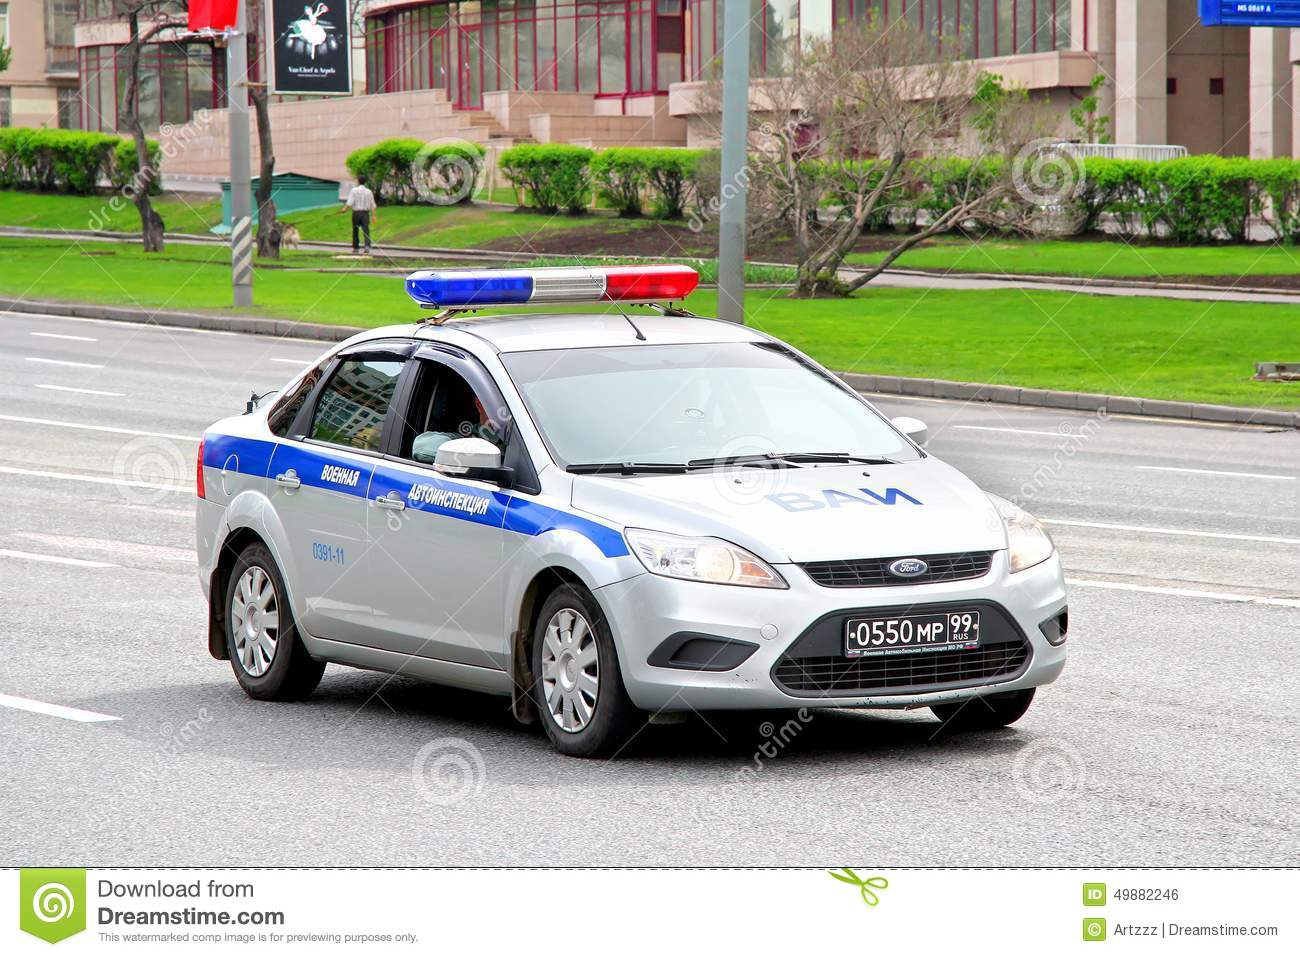 car city focus ford military moscow police ... & Ford Focus Editorial Photo - Image: 49882246 markmcfarlin.com